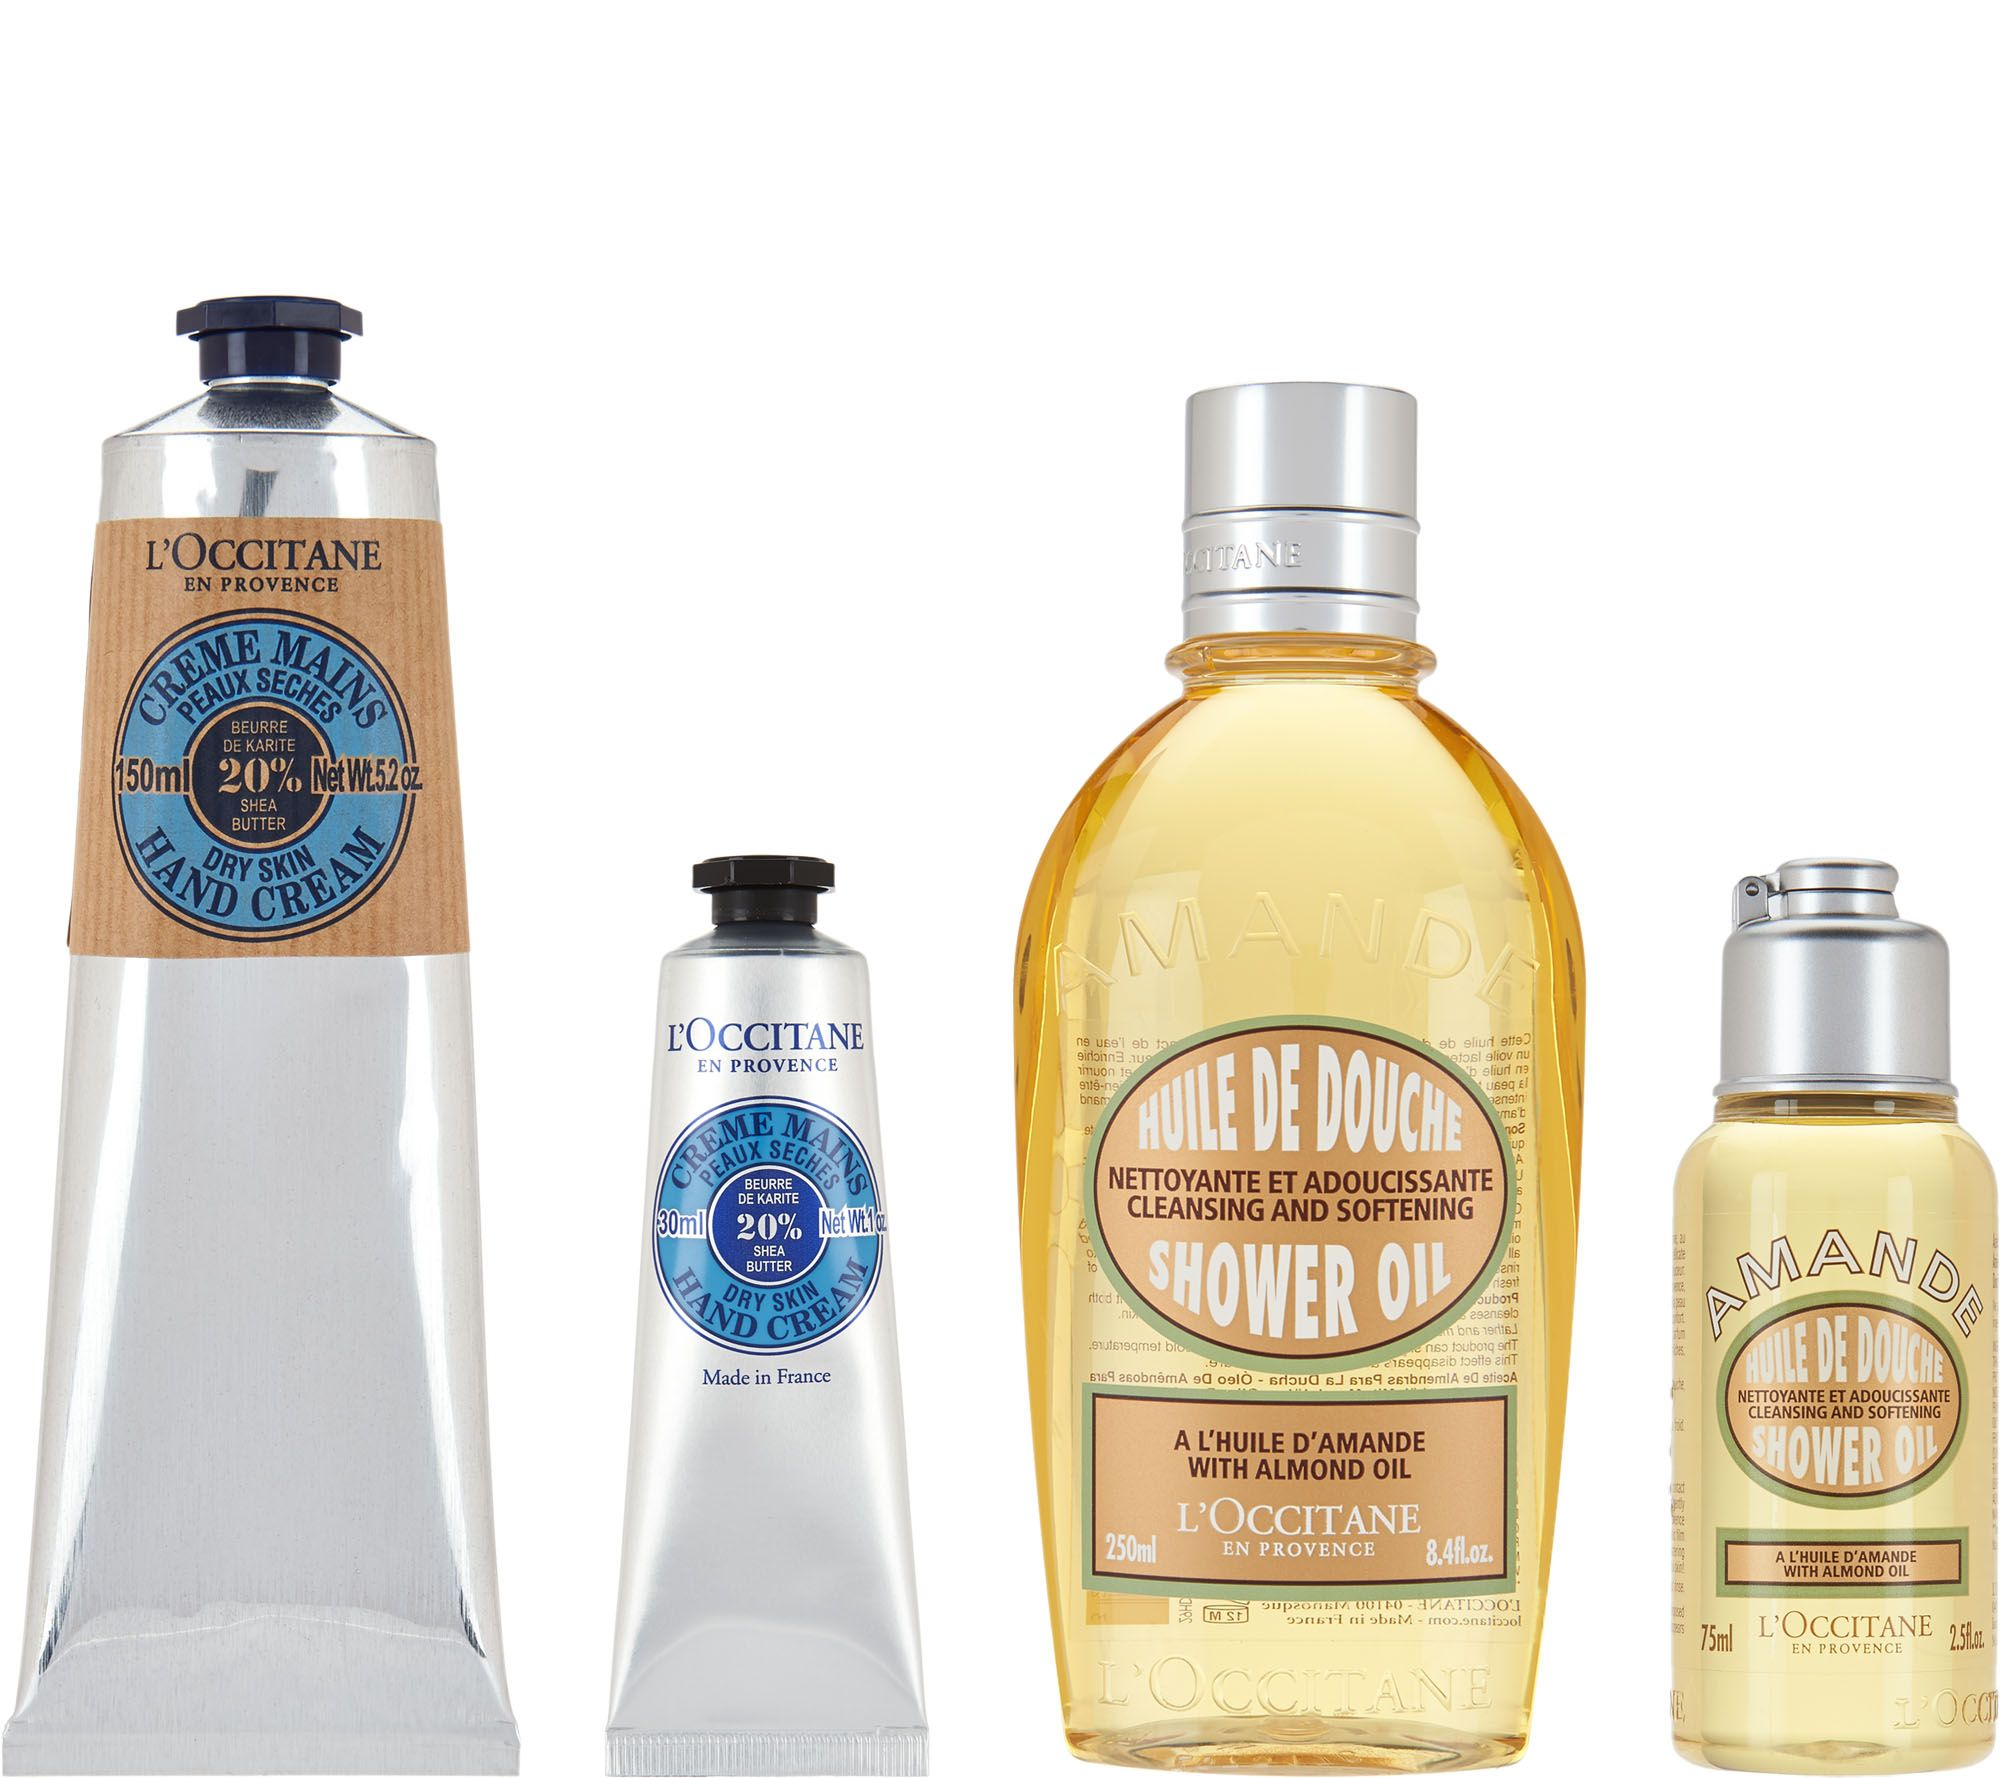 L'Occitane offer natural skin care and beauty products, as well as organic cosmetics directly inspired by the South of France art de vivre & Provençal beauty secrets. Discover our .